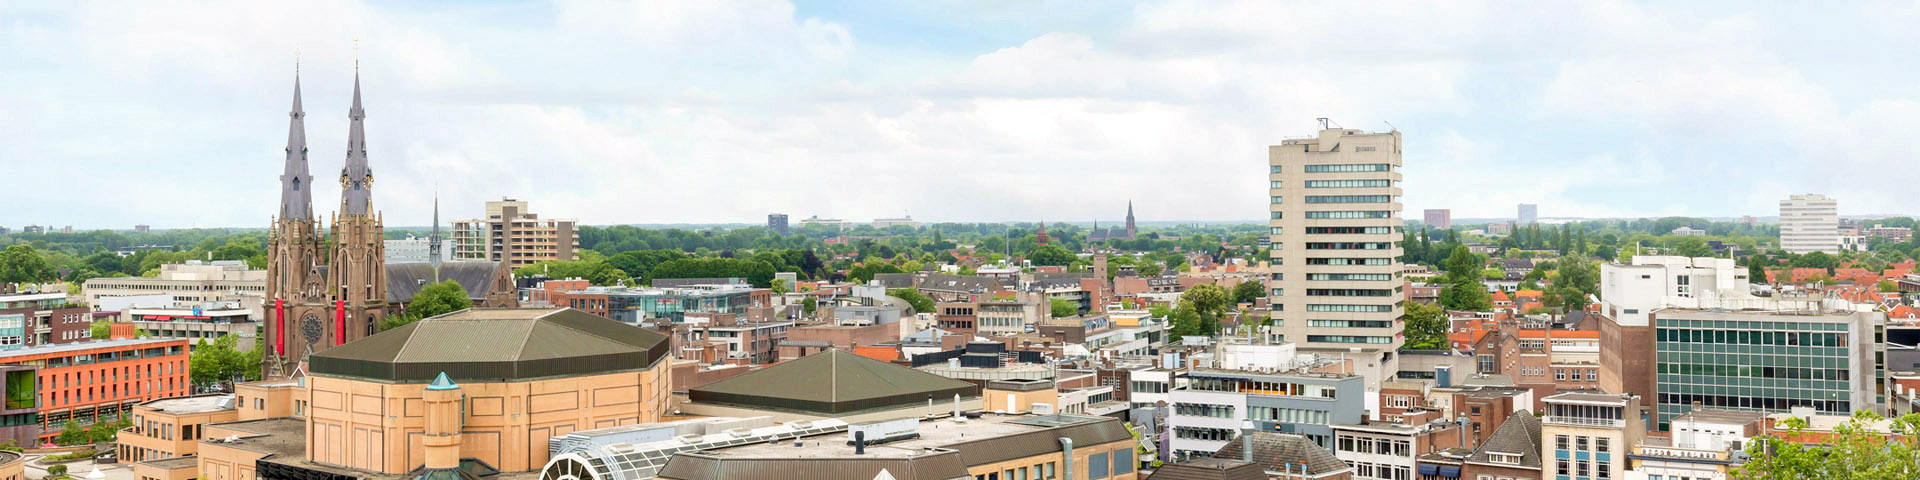 view of Eindhoven city